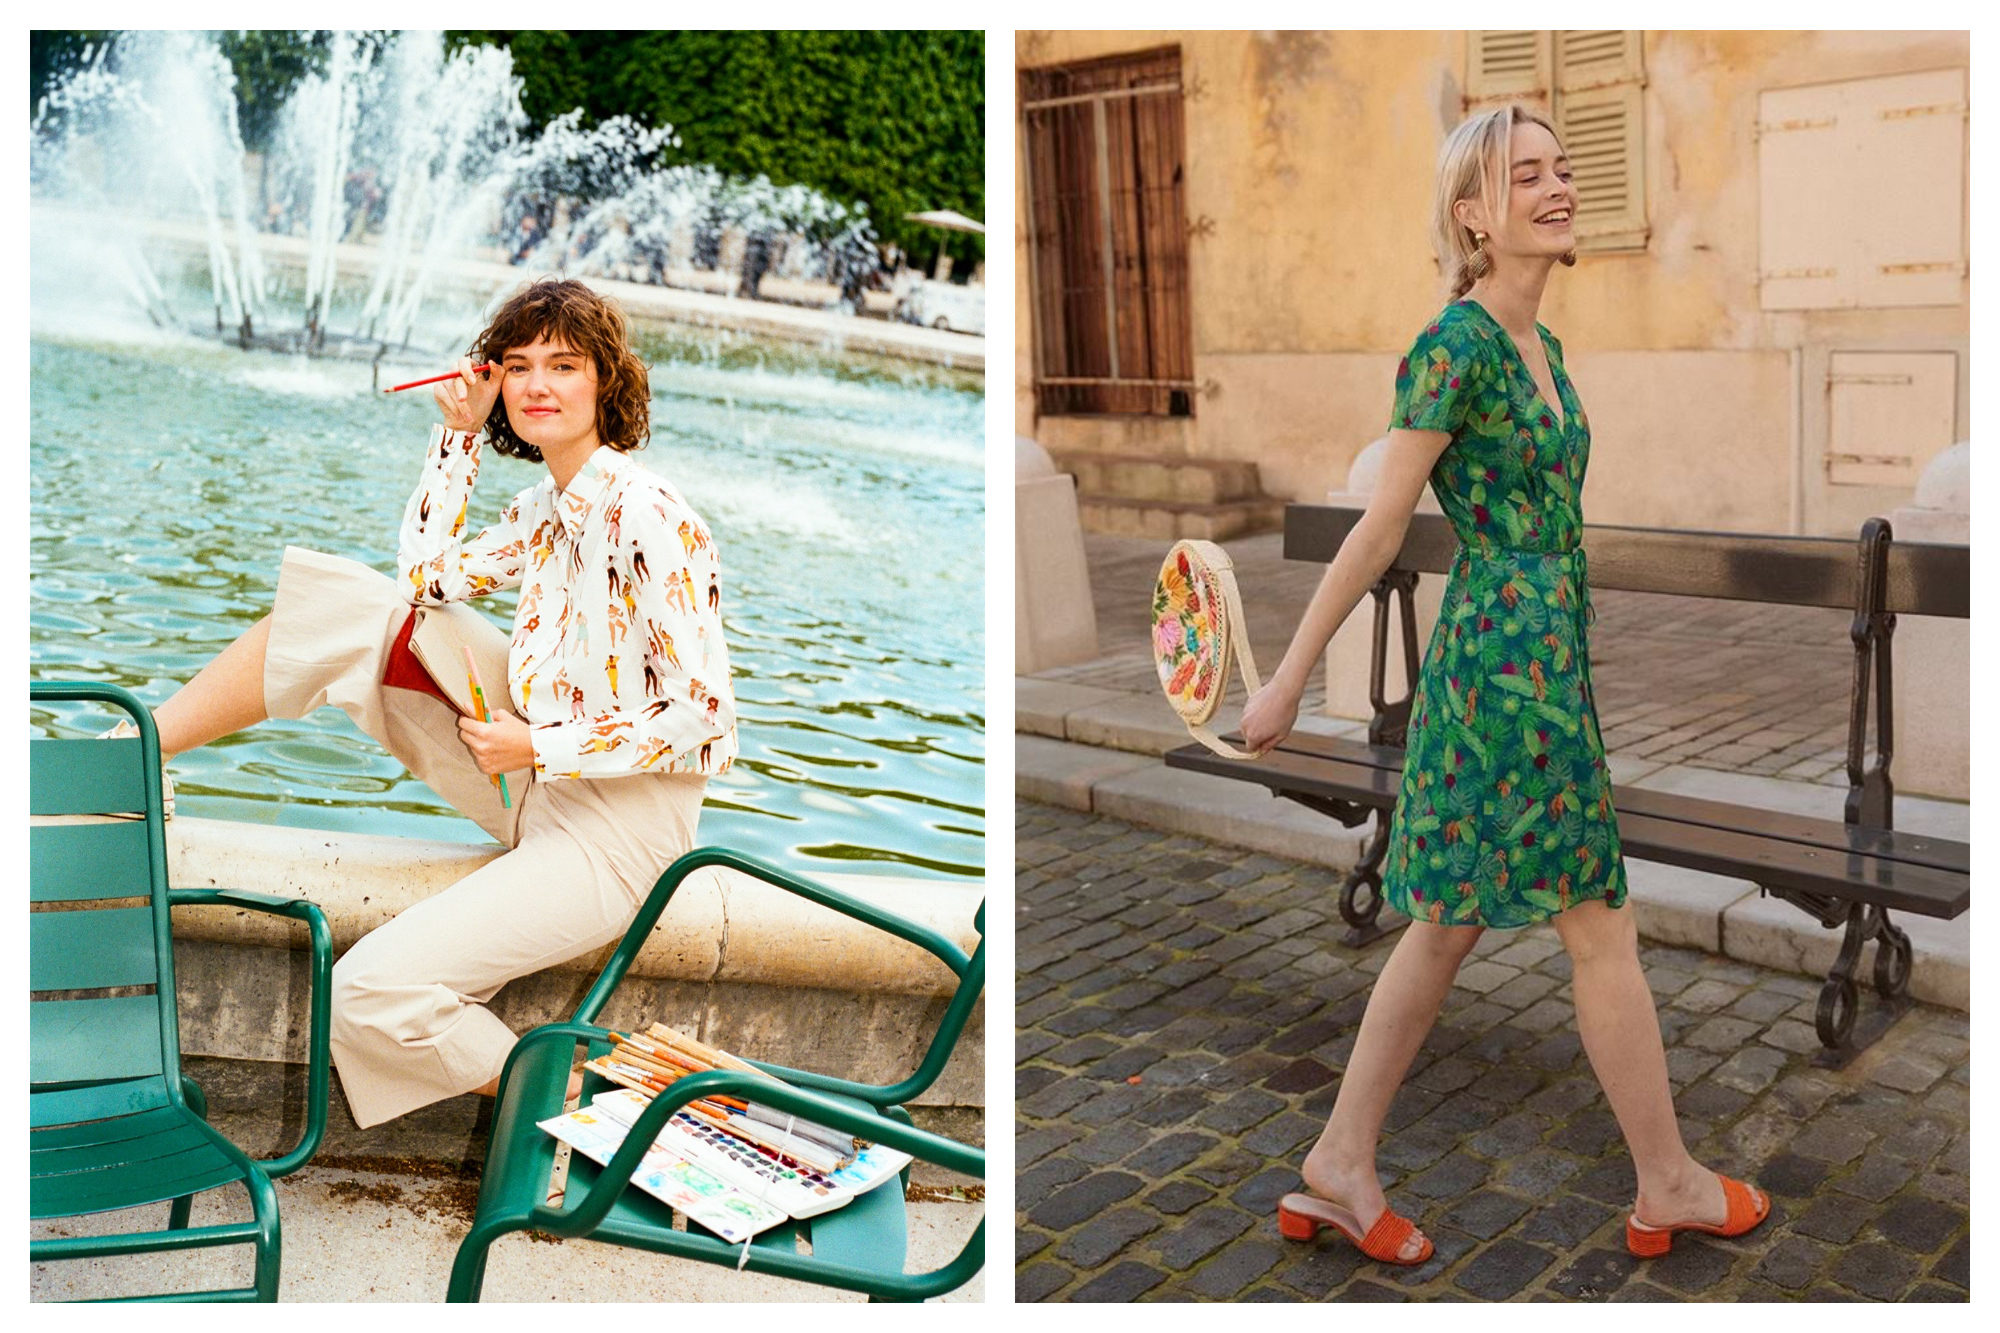 A woman sits on the edge of the fountain at Jardin des Tuileries in Paris wearing a printed cream shirt and beige trousers (left). A woman walks through the cobblestone streets of Paris wearing a deep green knee-length dress and orange open-toed mules (right). Both outfits are from one of our favorite fashion brands Soi Paris.